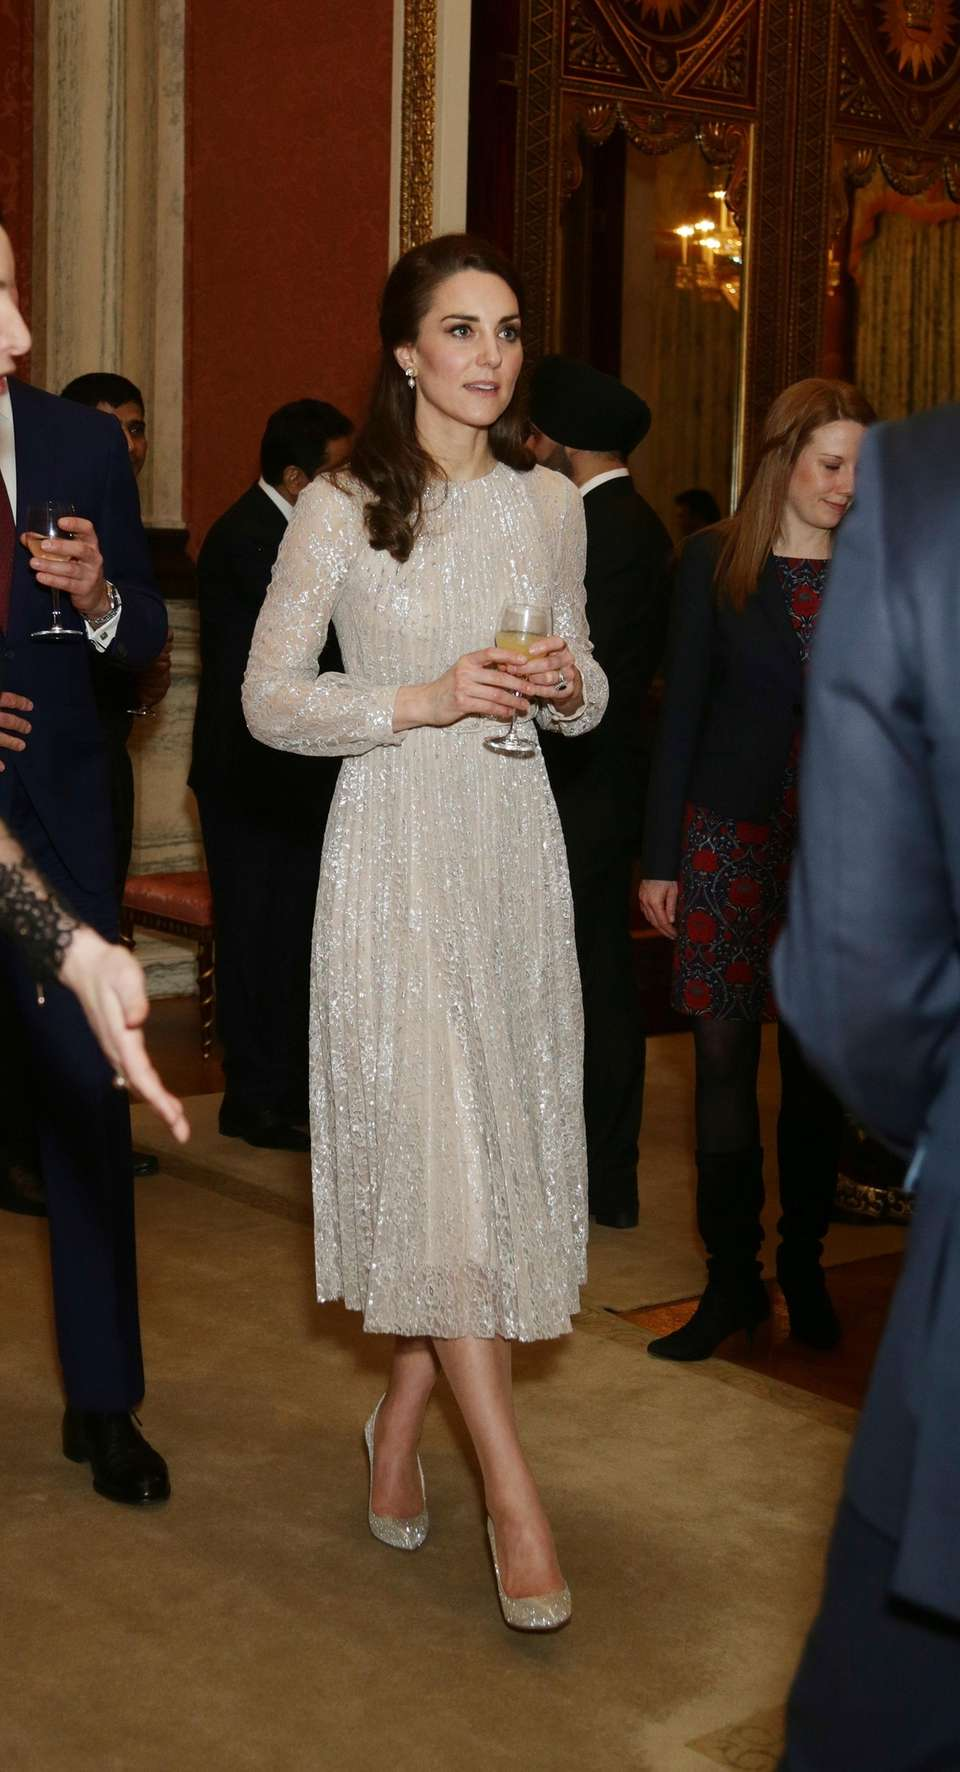 Duchess Kate, Duchess of Cambridge, enters a reception